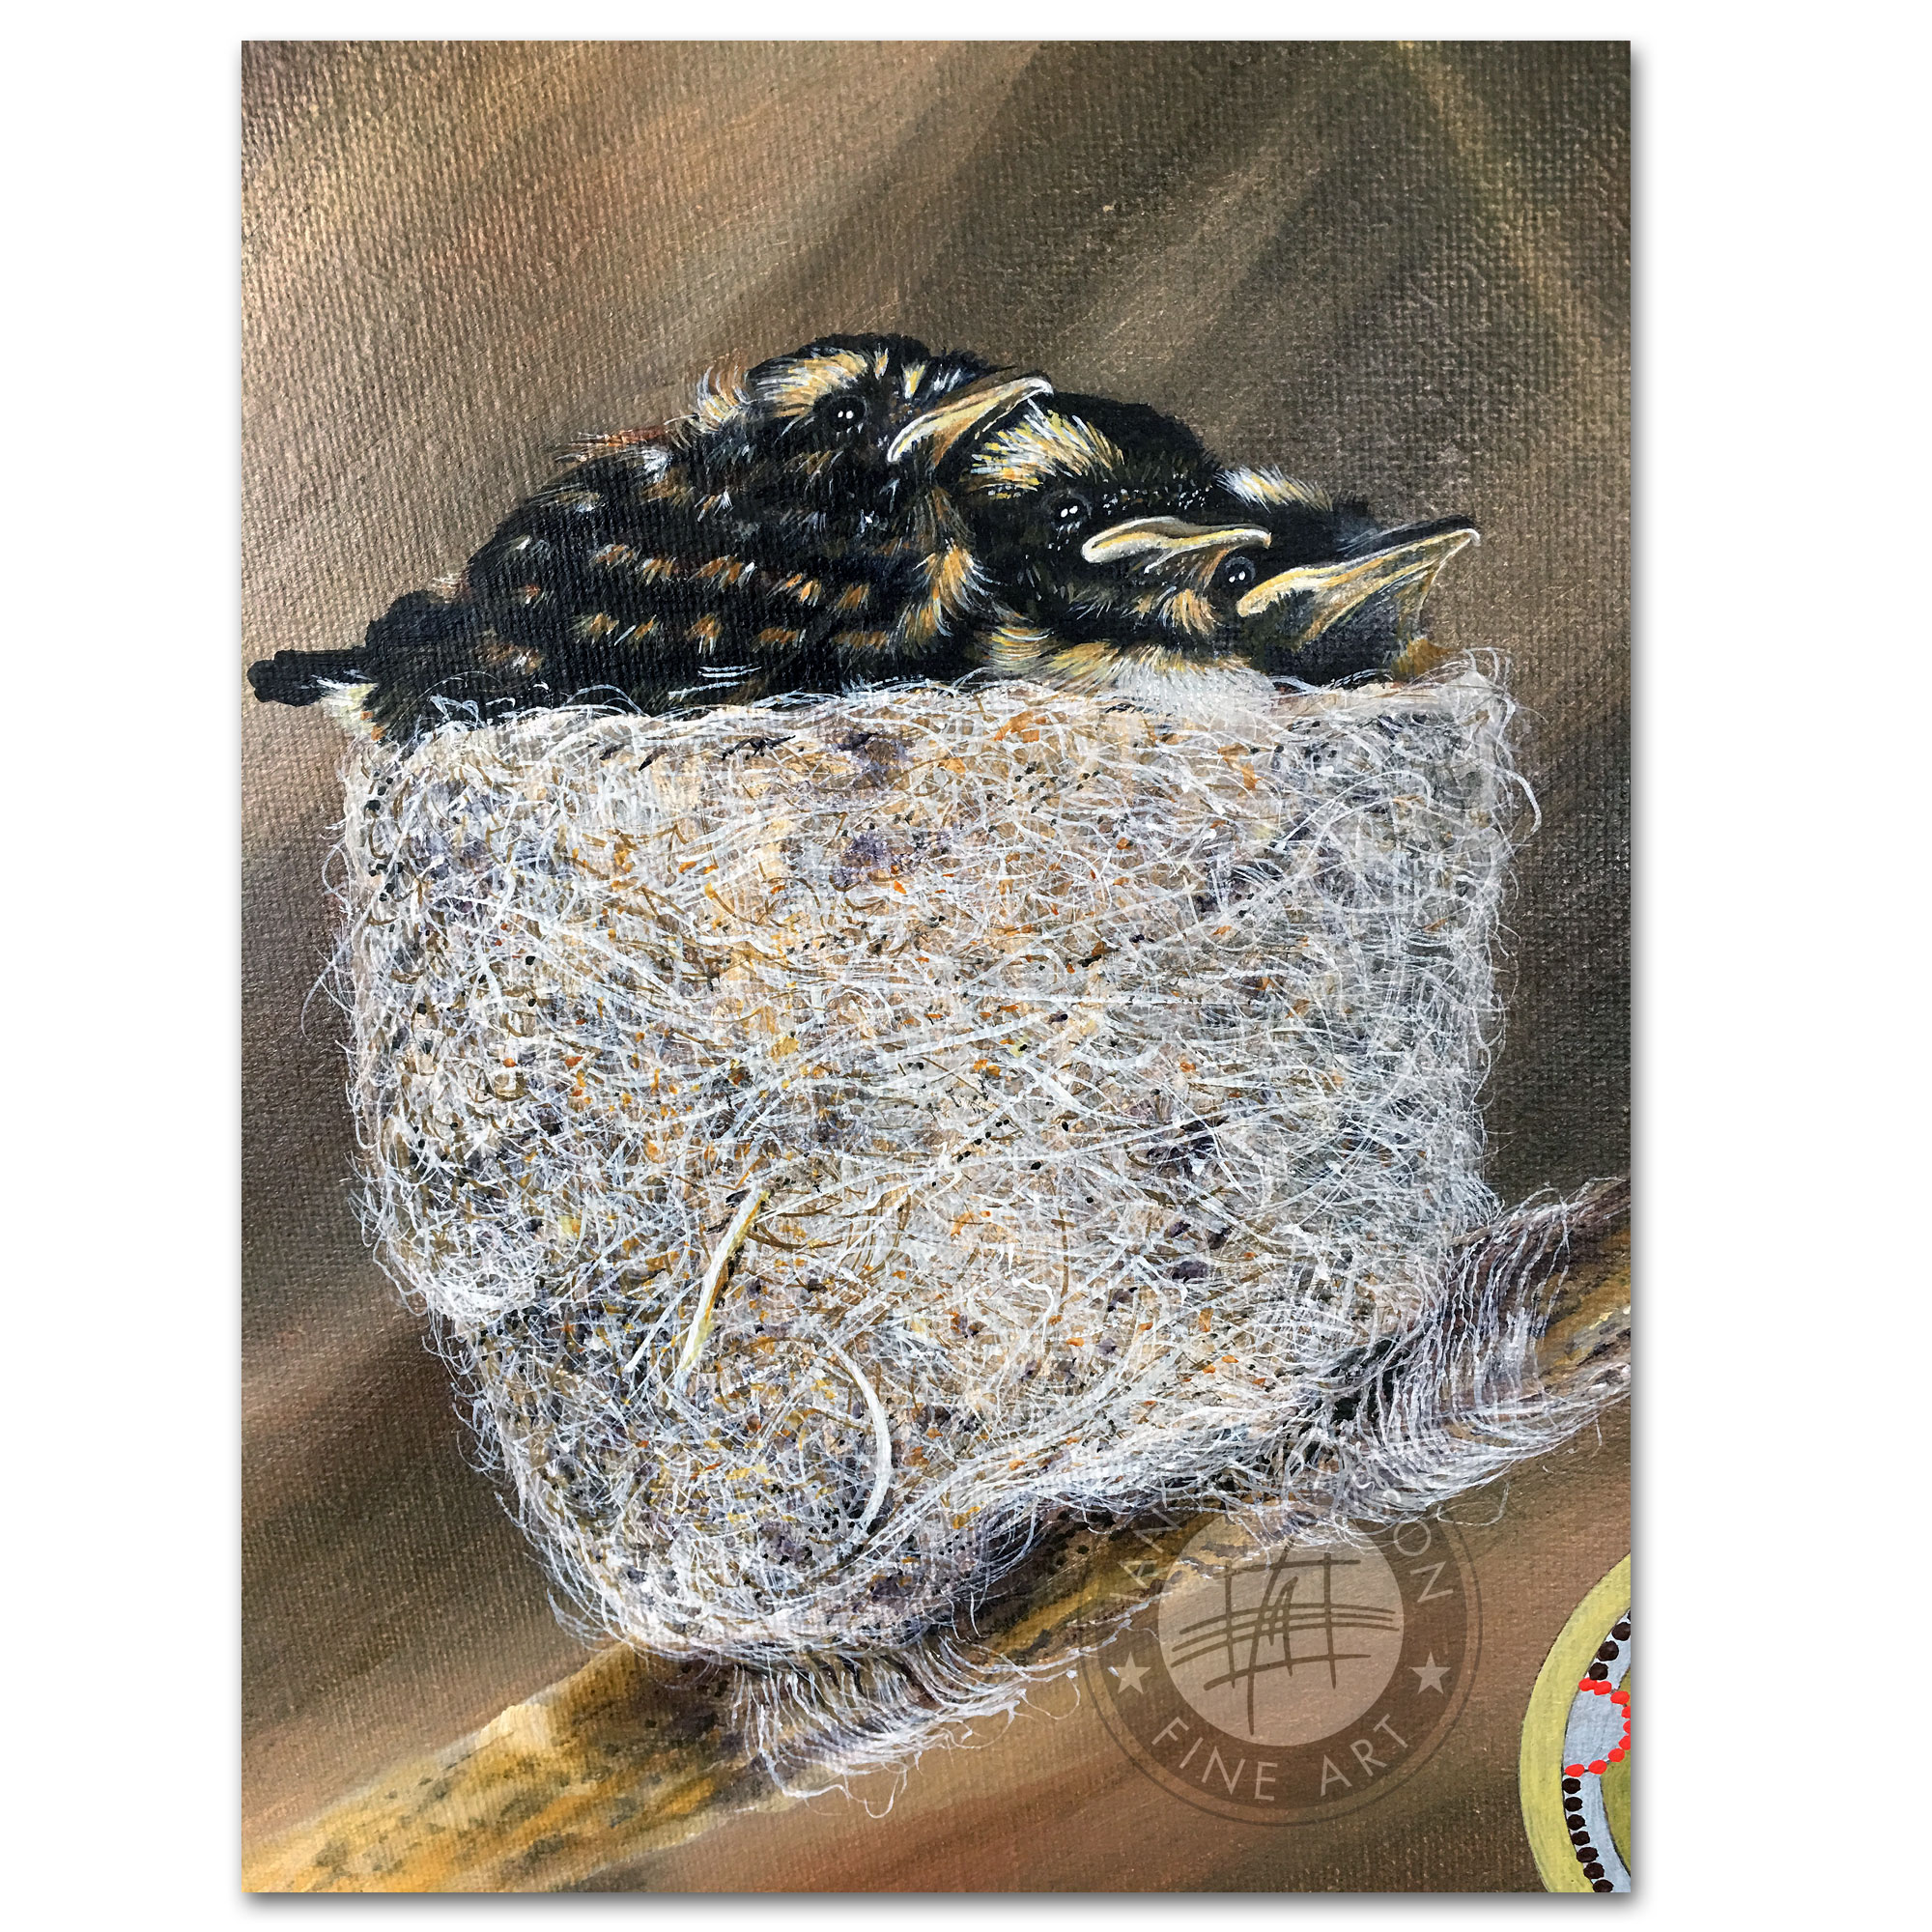 Willy Wagtail and its family story - Oil painting Australian wildlife with pendant and nest